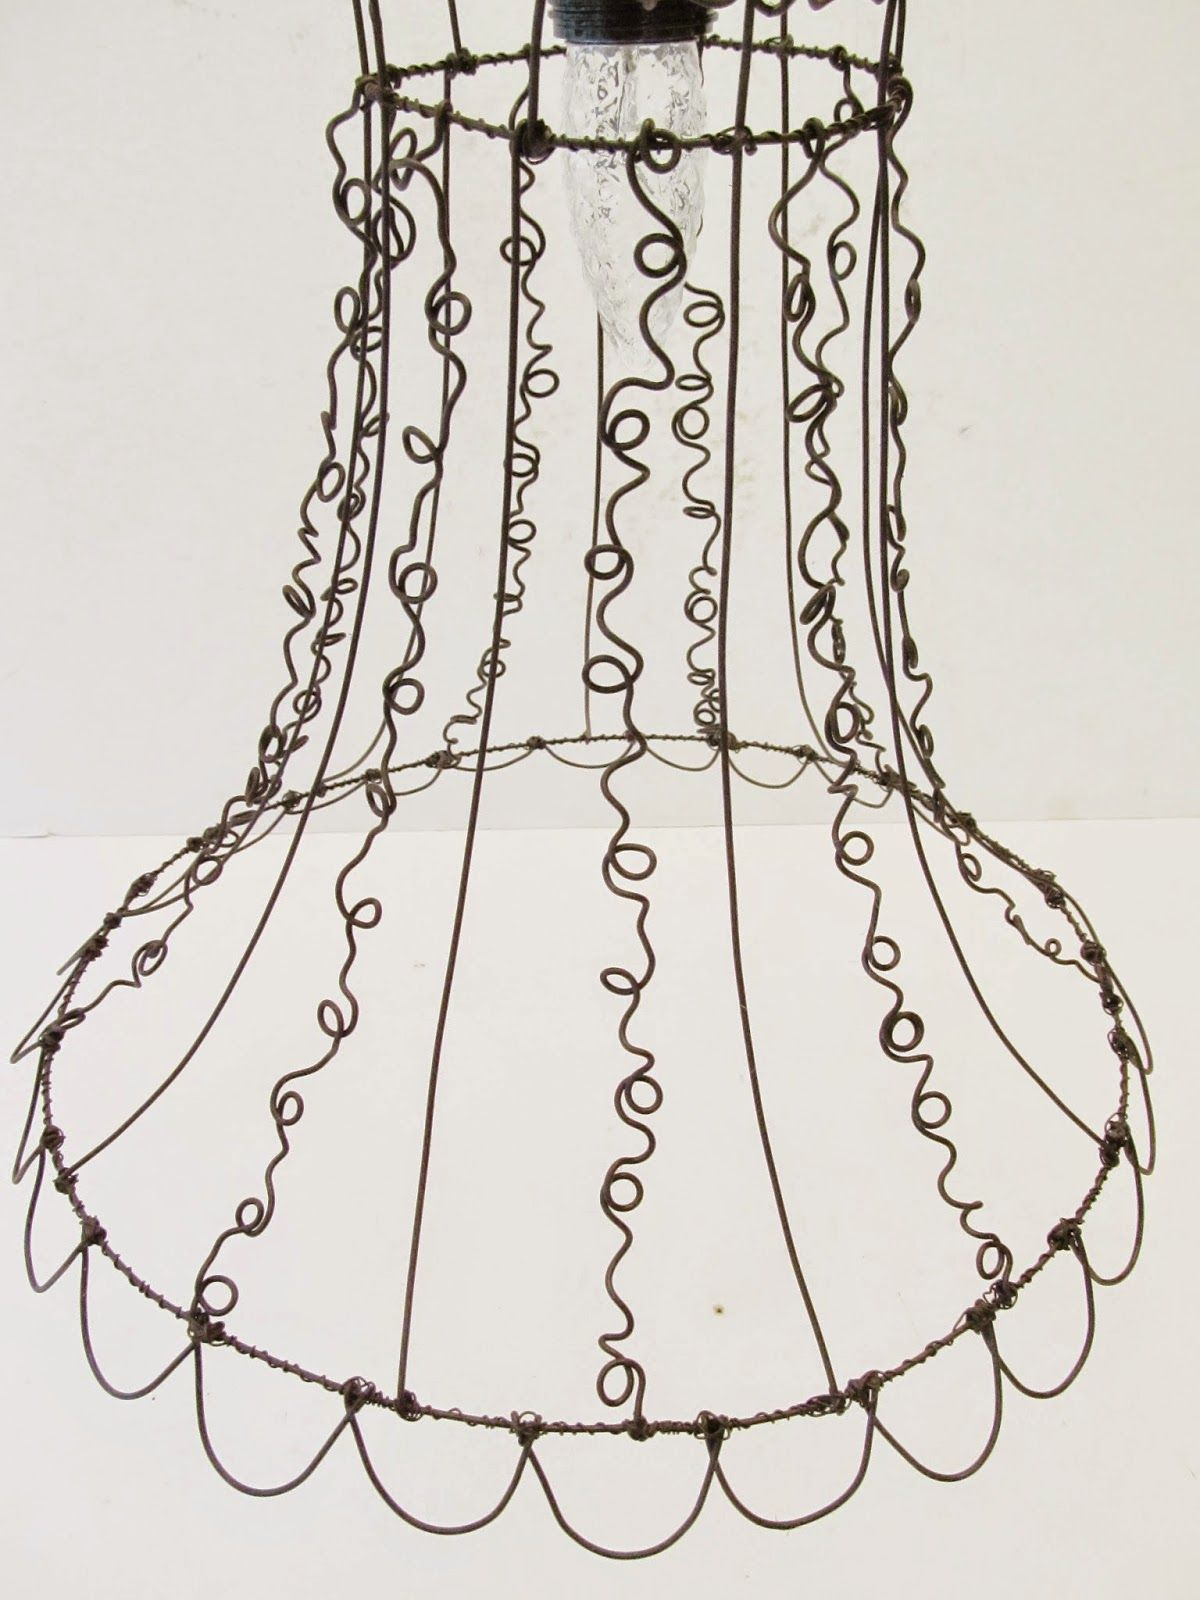 Wire lampshade art wire center curly wire hanging lampshade sassytrash lampshades pinterest rh pinterest co uk wire lampshades wire lampshade frames for sale greentooth Gallery